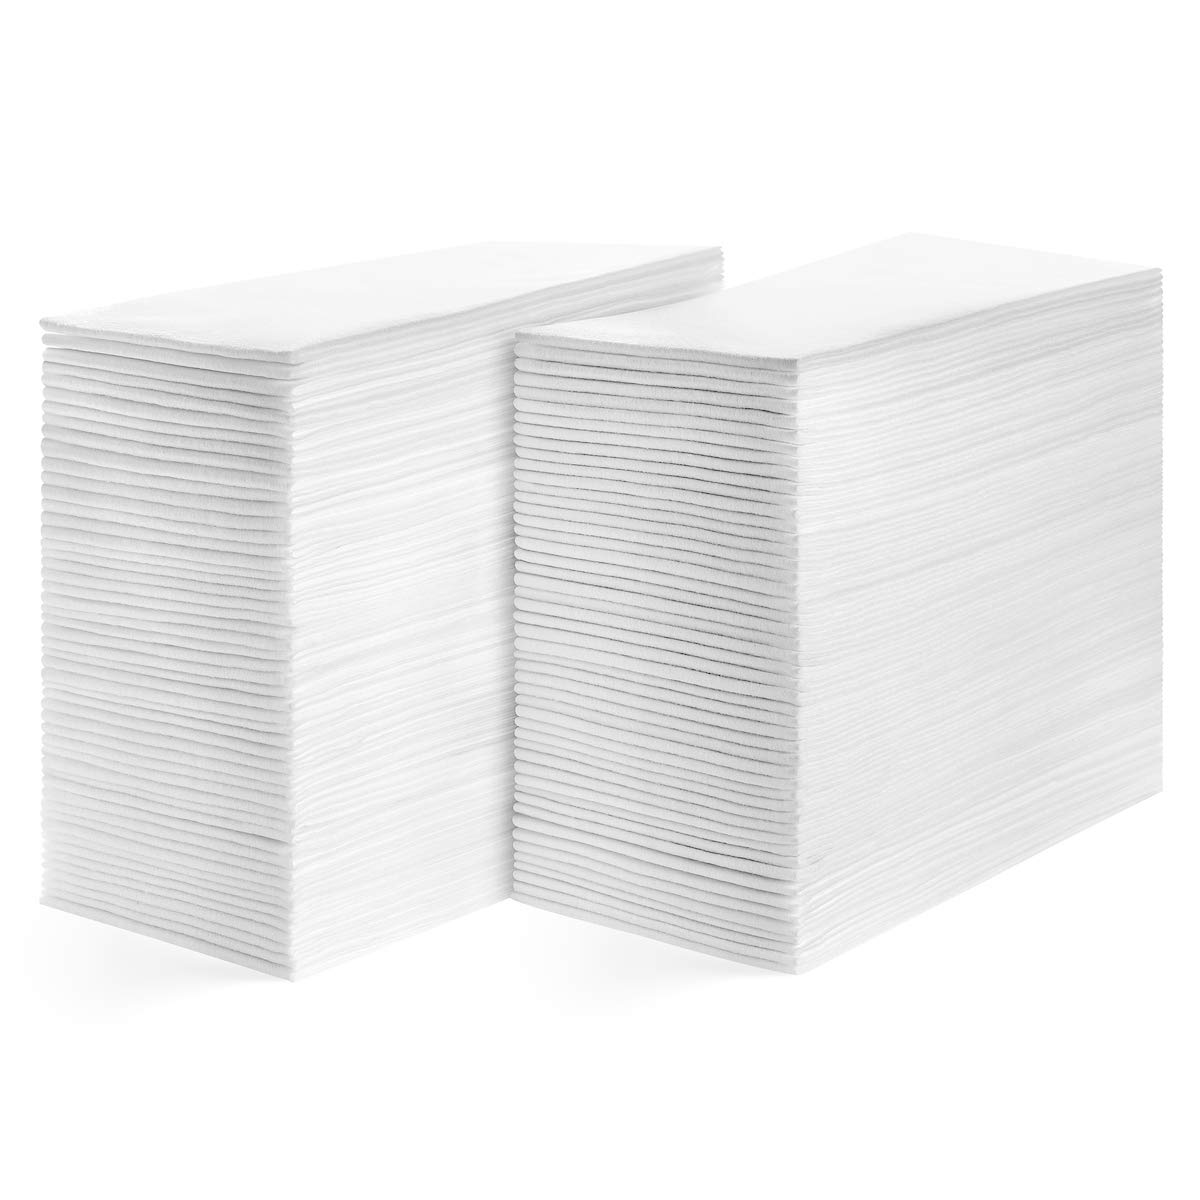 American Homestead Linen Feel Guest Towels Disposable Cloth Like Paper Hand Napkins Soft, Absorbent, Paper Hand Towels for Kitchen, Bathroom, Weddings and Events (Pack of 200 Smooth, Elegantly Smooth)